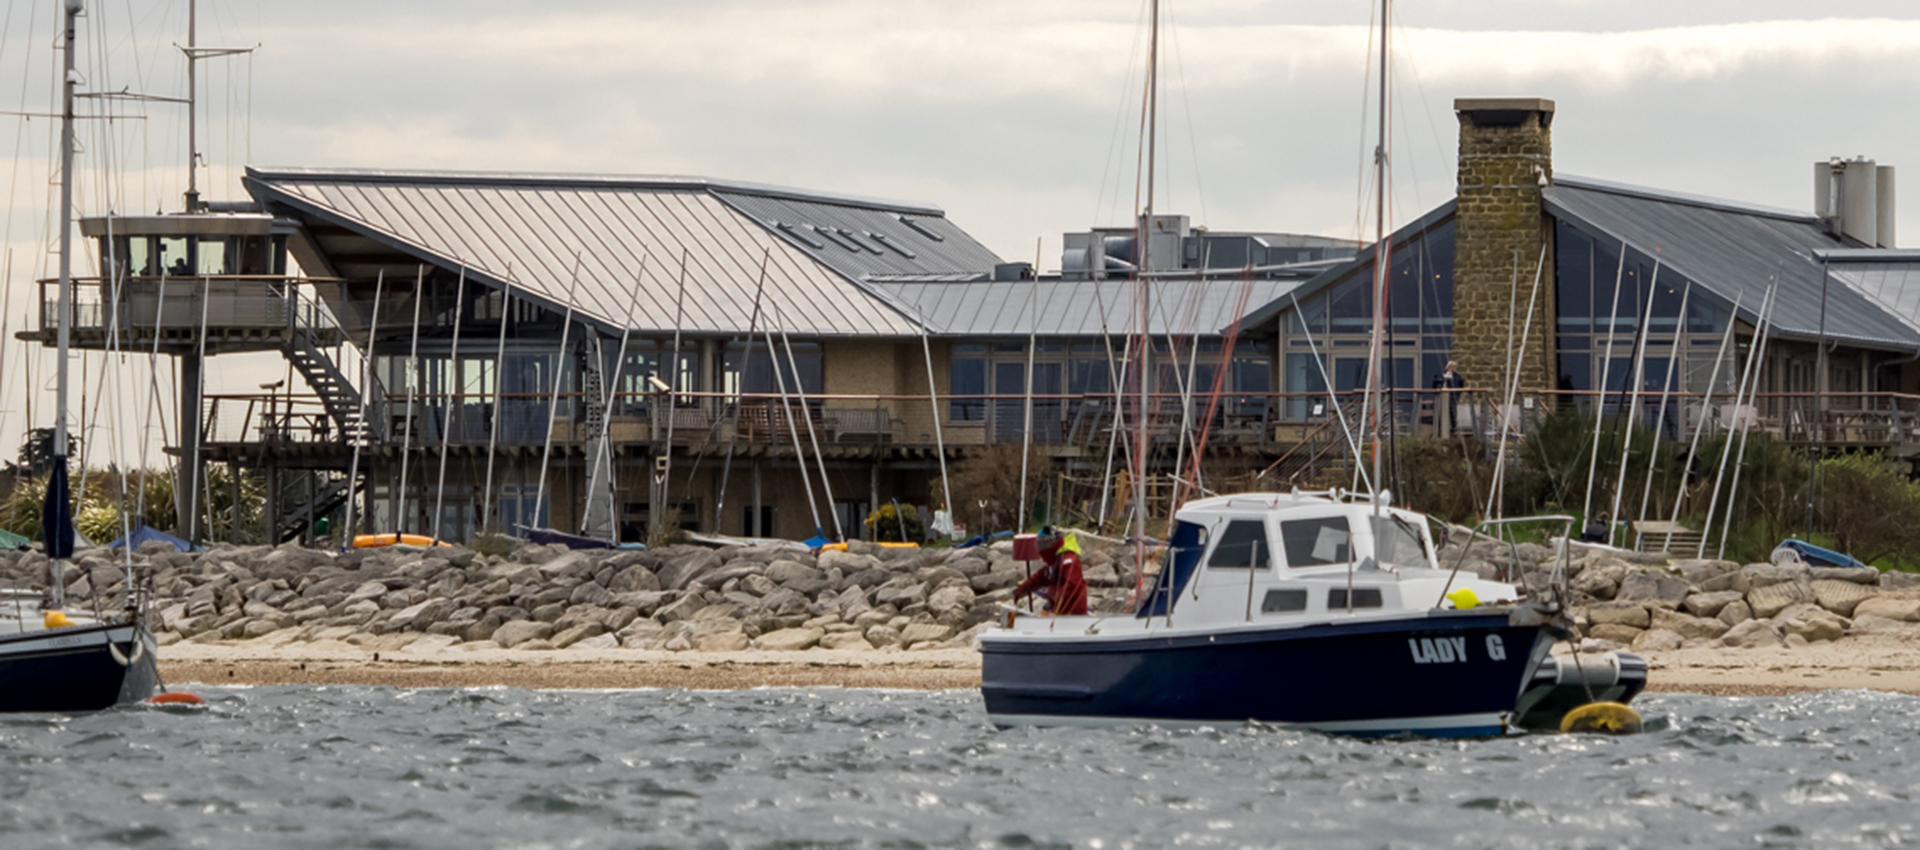 Hayling Island Sailing Club